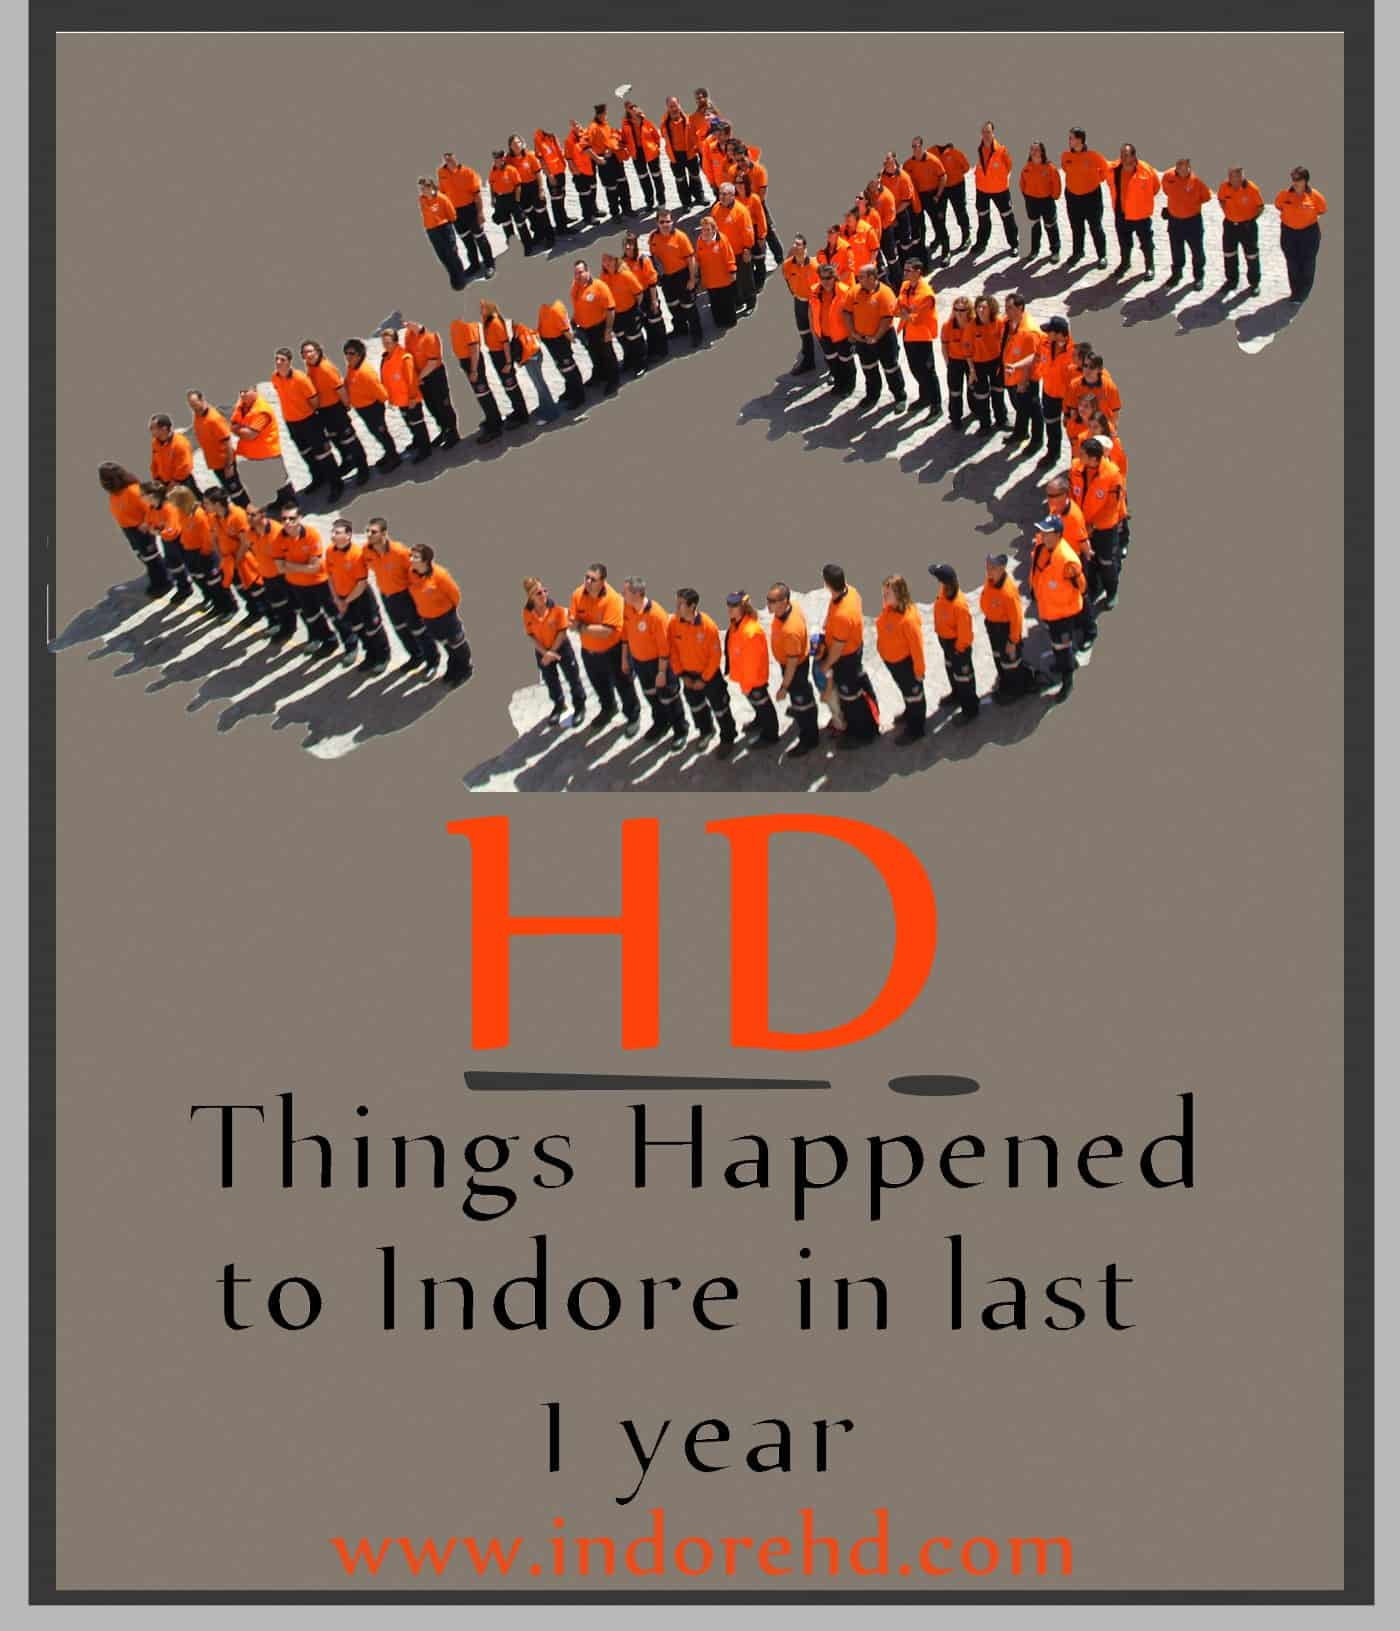 25 hd things happened to indore in last 1 year.psd